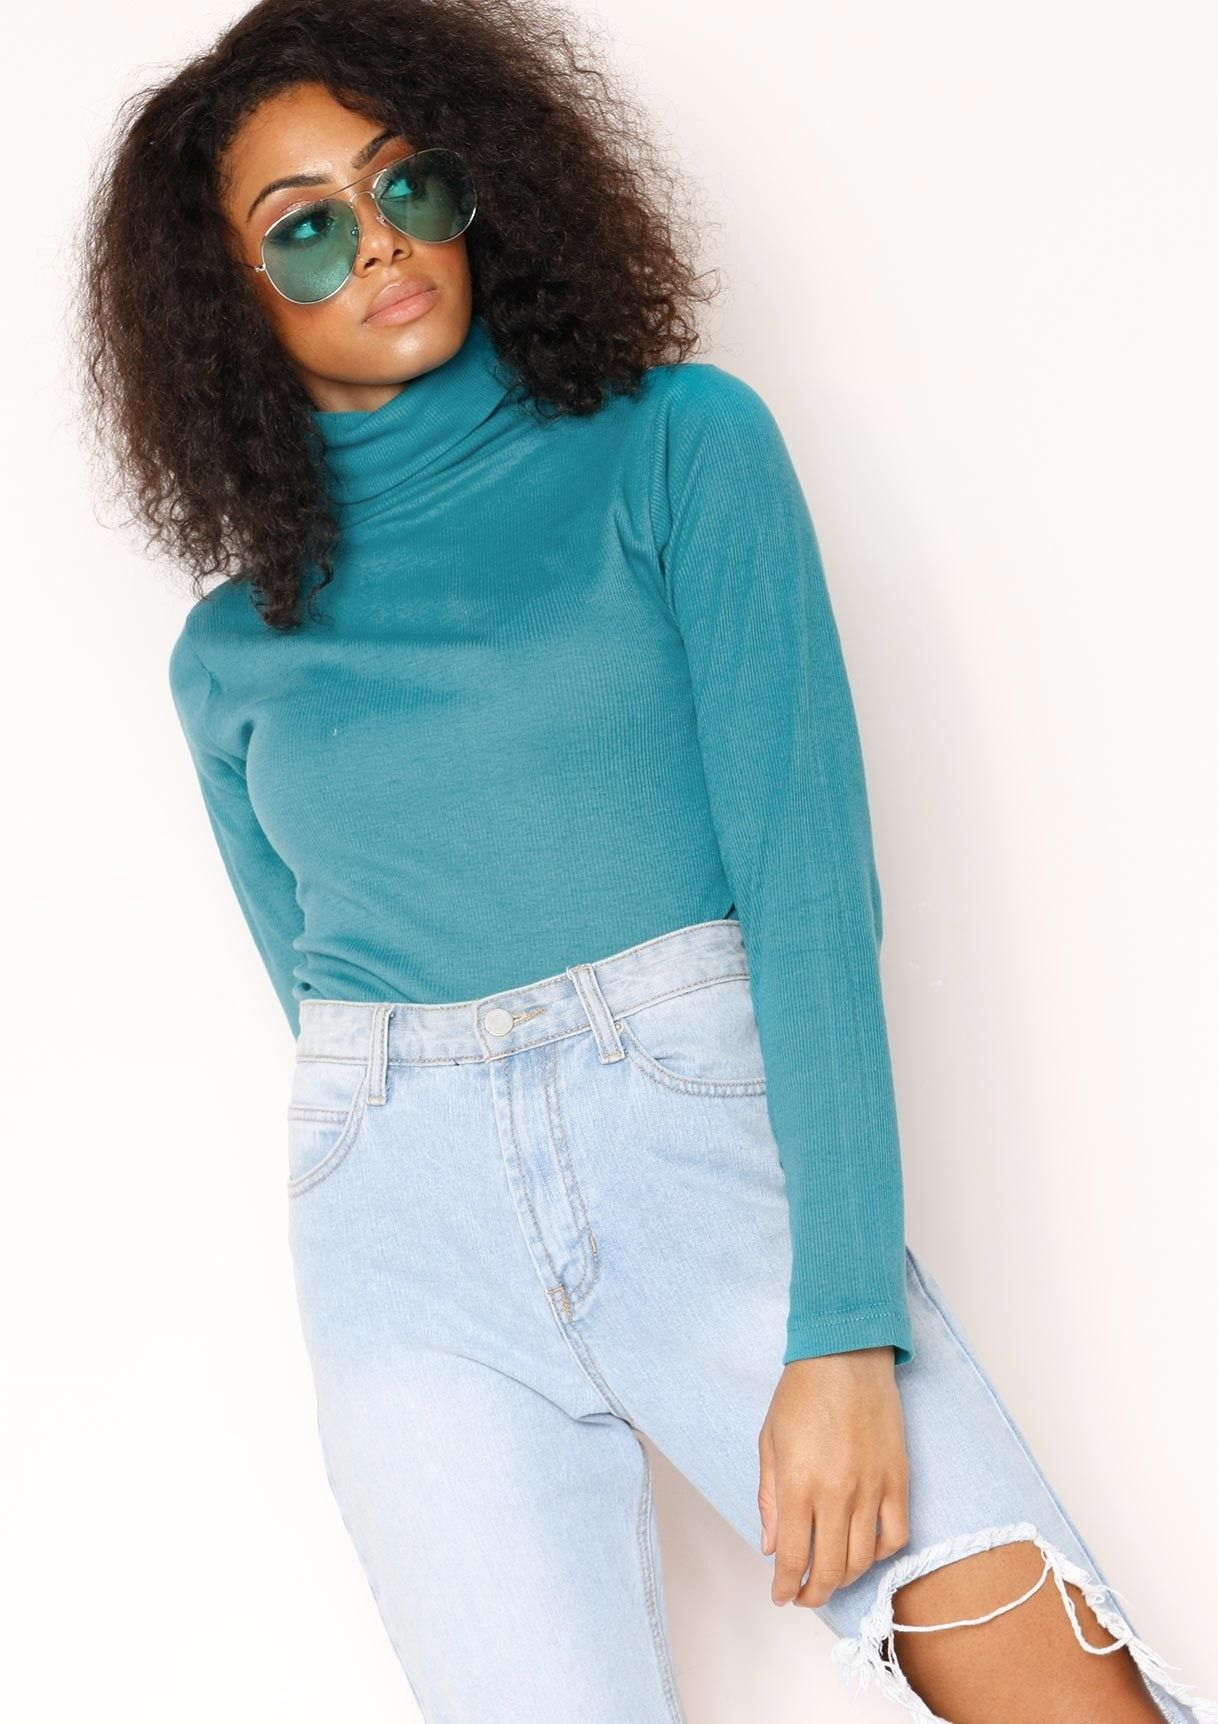 817c14abd Missyempire - Fifi Teal Ribbed Polo Neck Top